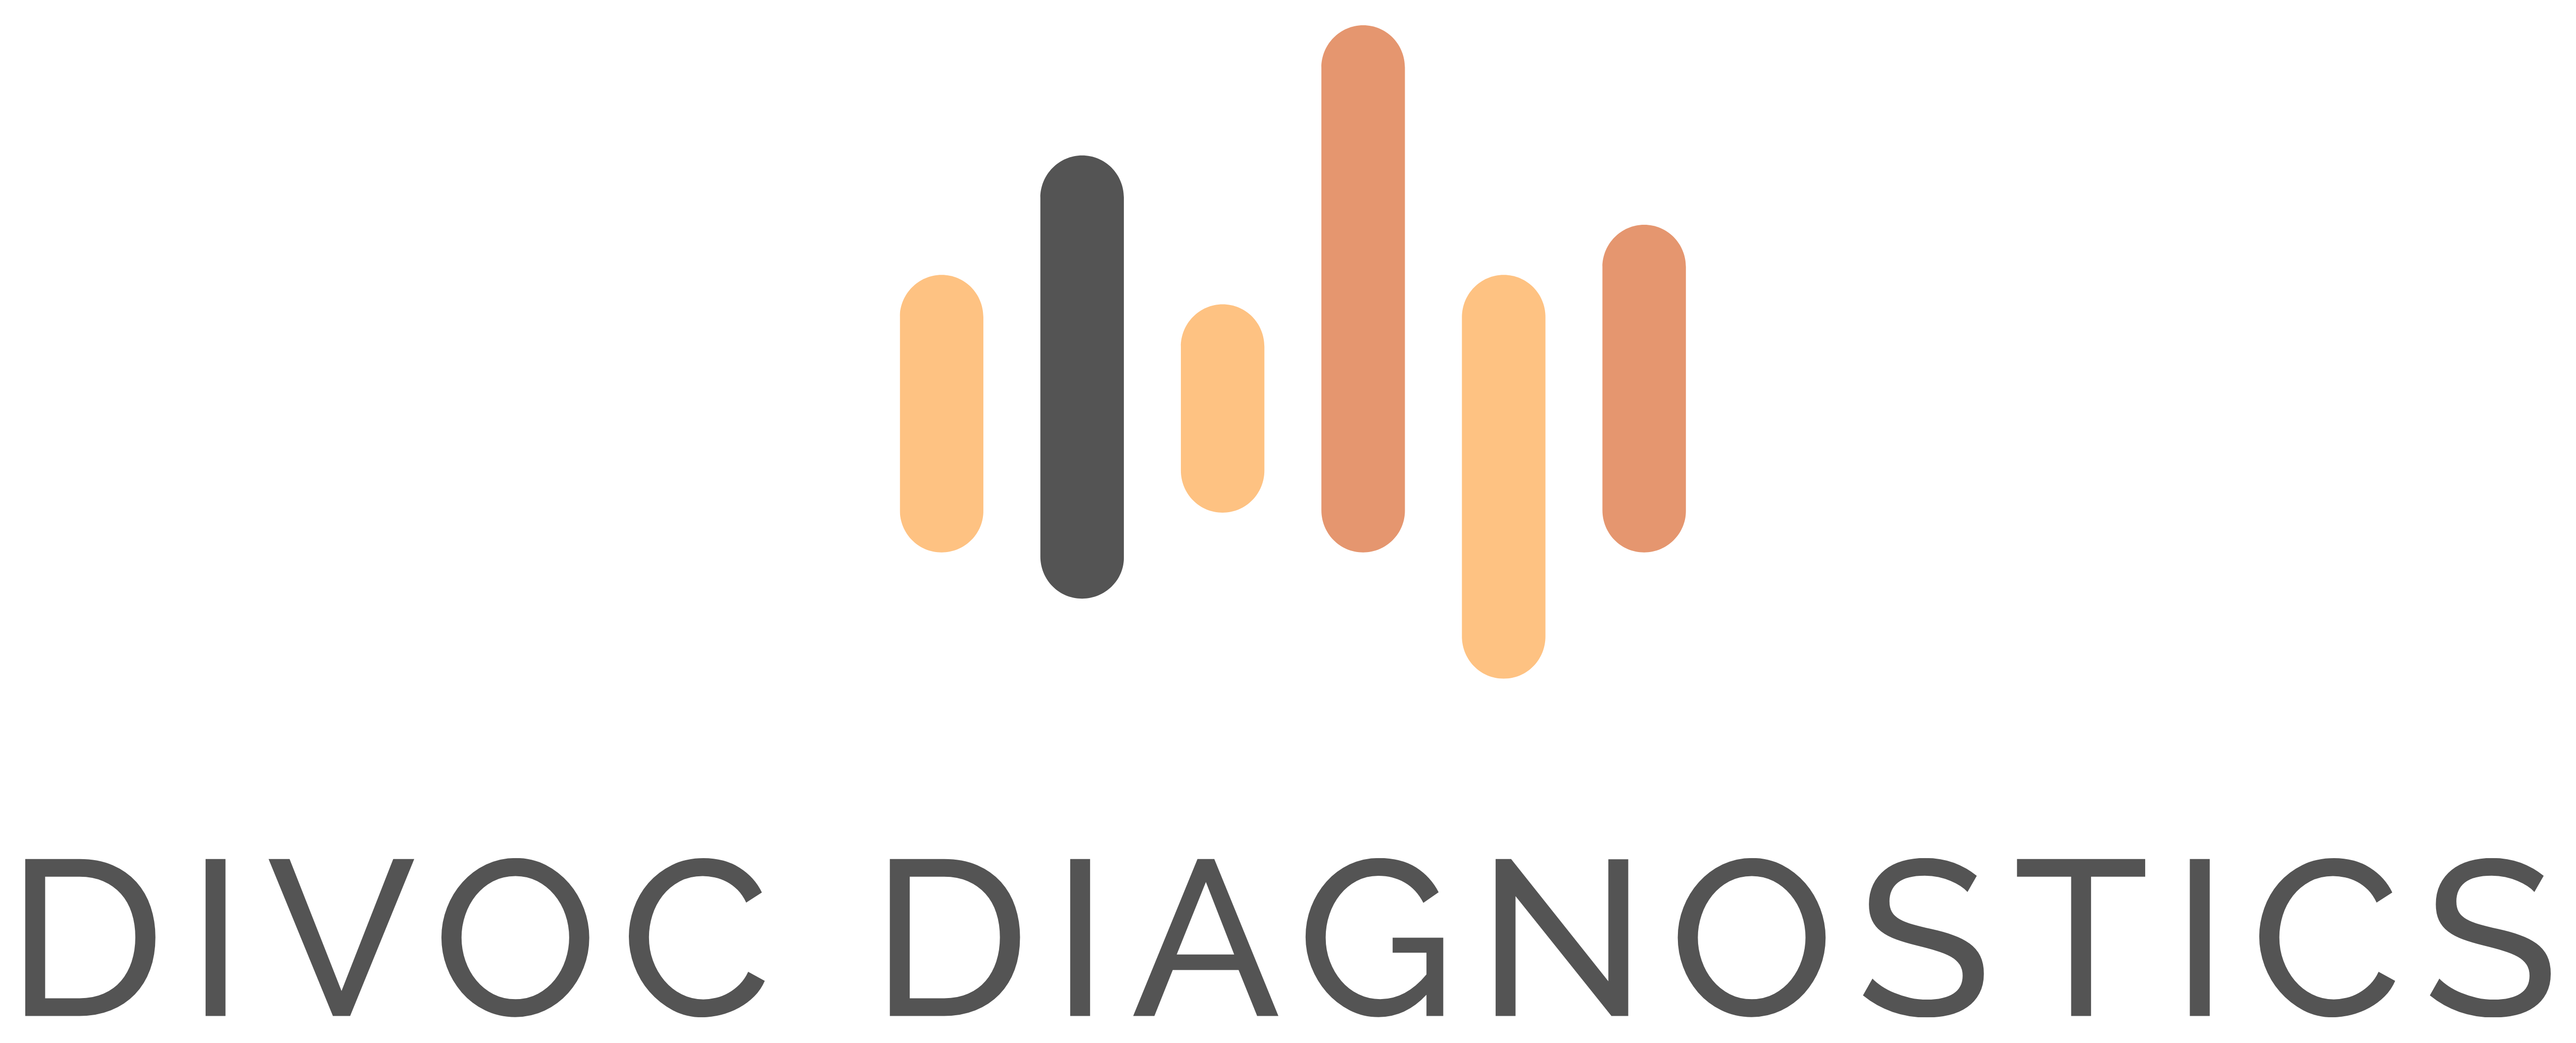 Divoc Diagnostics